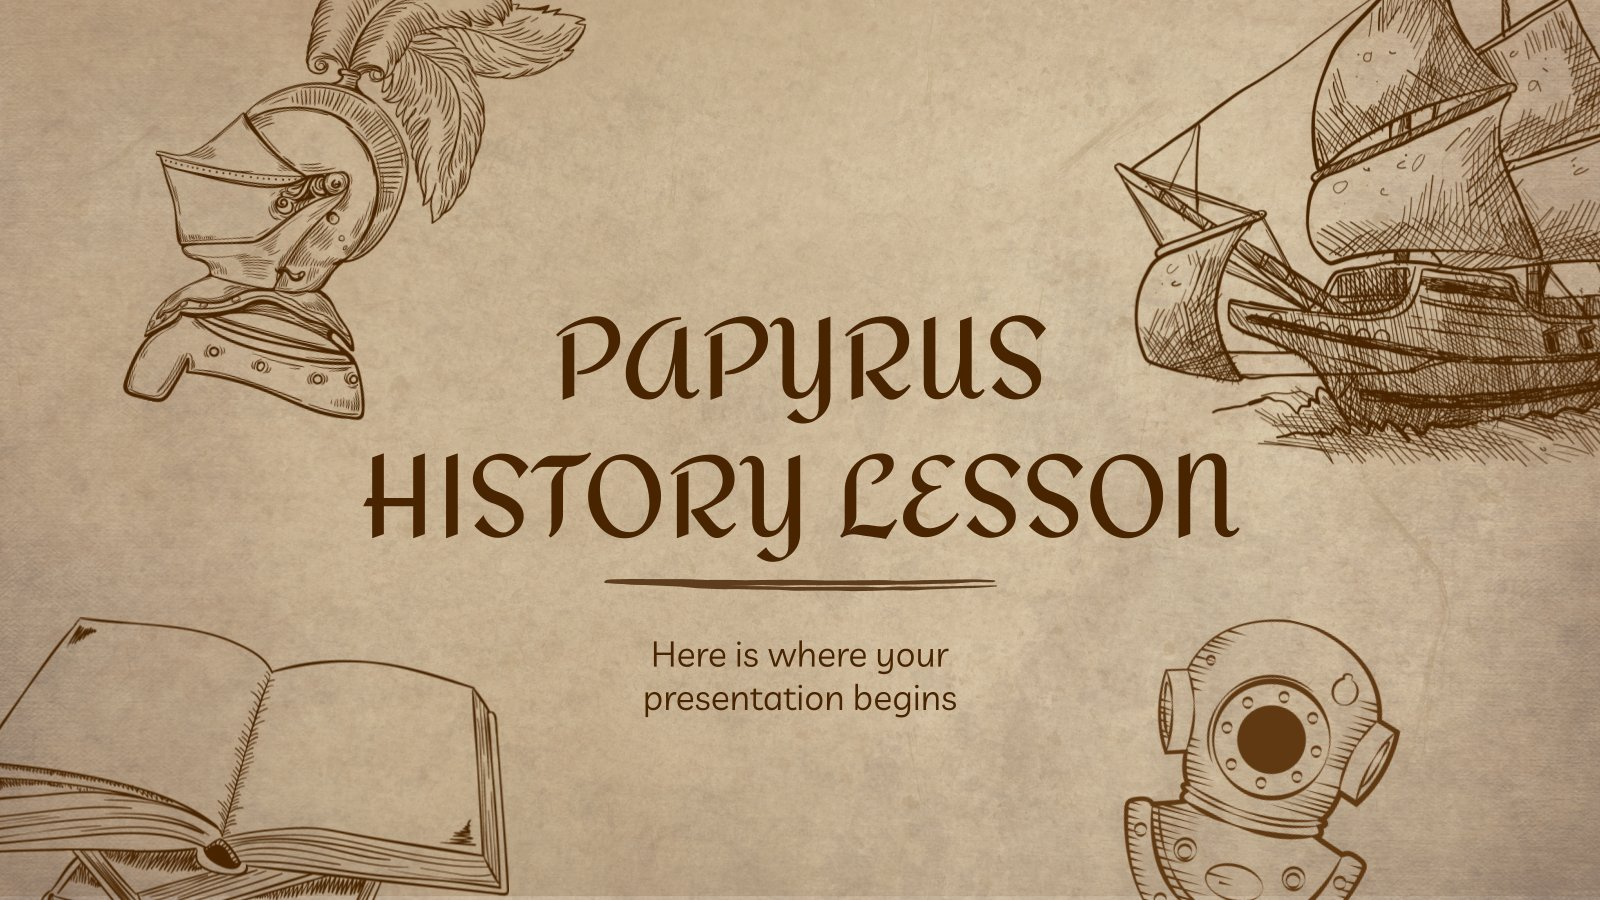 Papyrus History Lesson presentation template